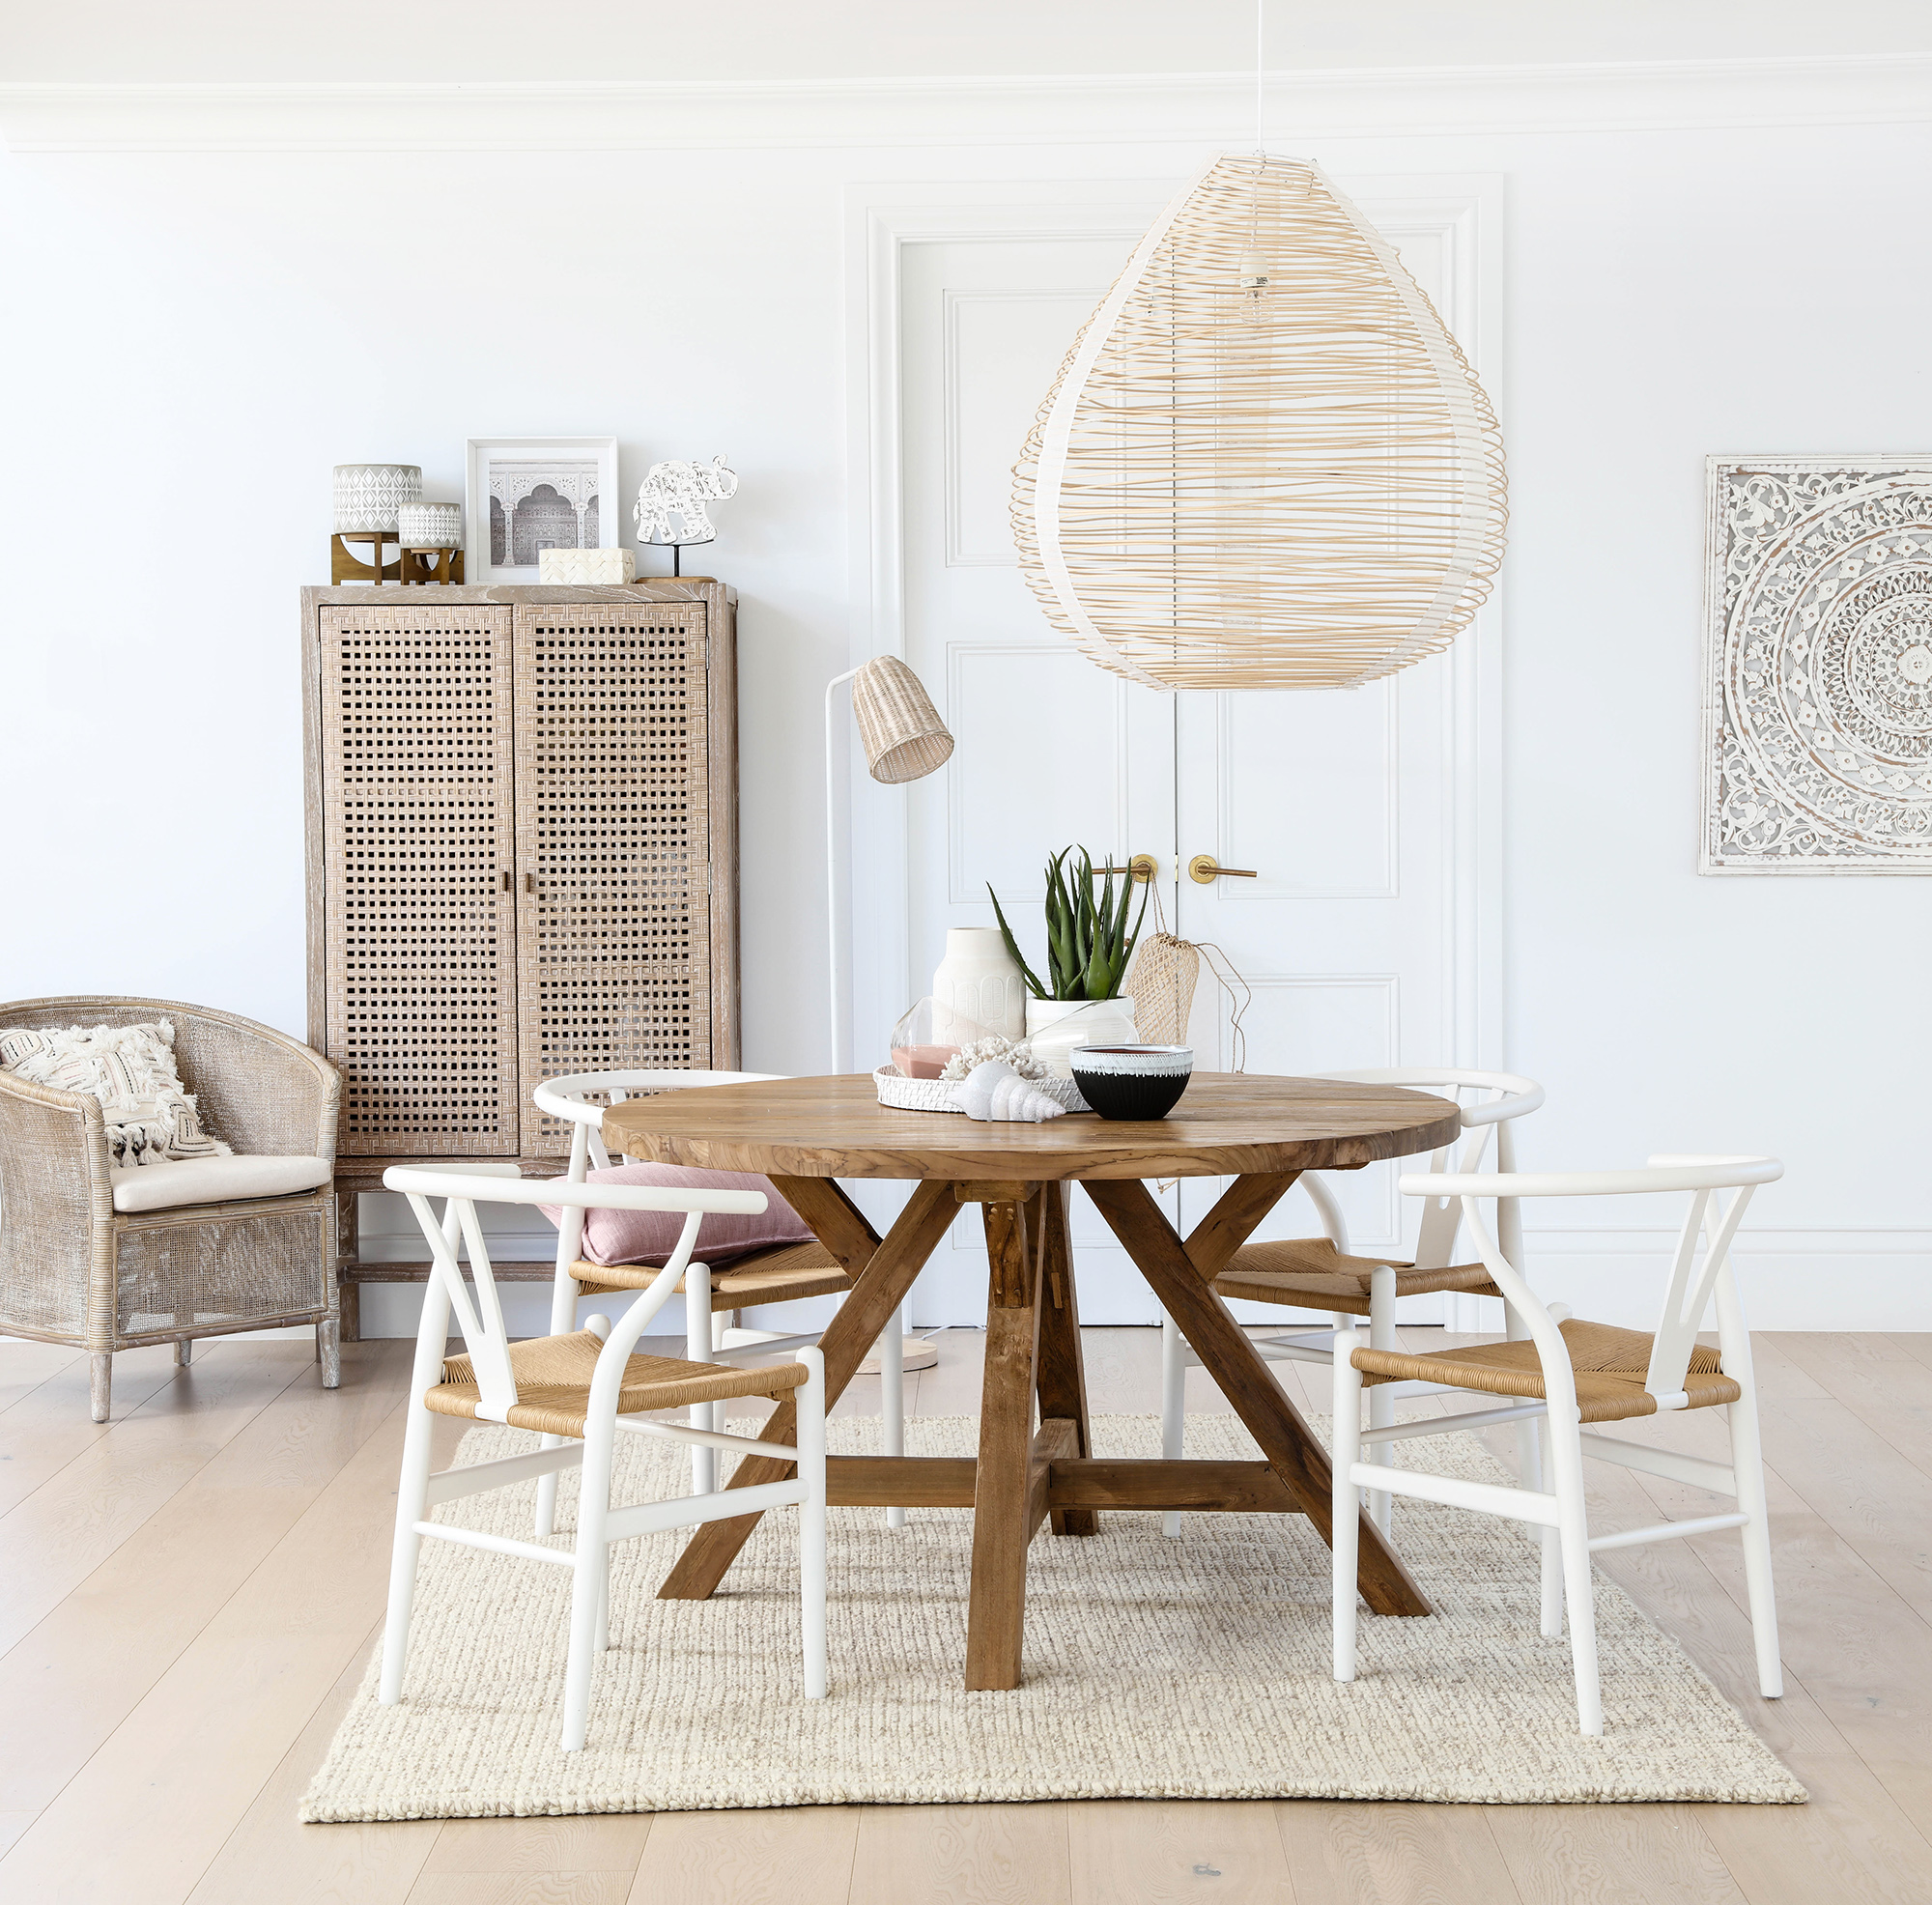 Pictured: Kenyo dining table, Megs wishbone chairs, Maya cabinet, Sky occasional chair.